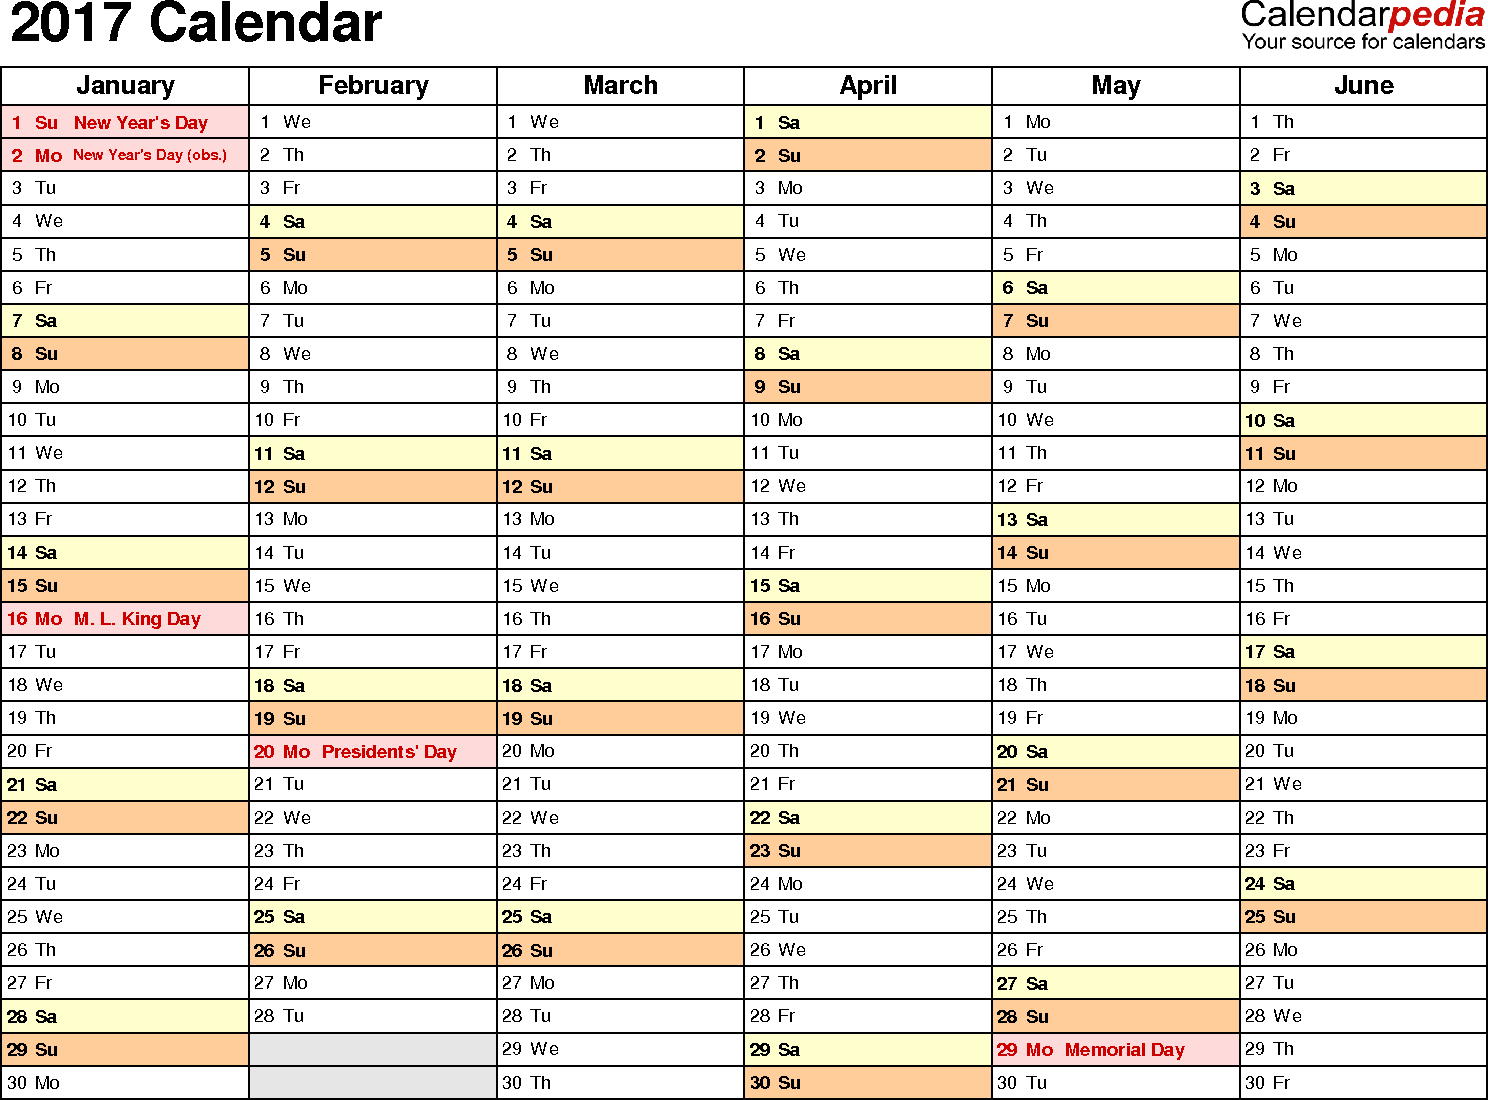 Ediblewildsus  Pleasant  Calendar  Download  Free Printable Excel Templates Xls With Lovable Template   Calendar For Excel Months Horizontally  Pages Landscape Orientation With Delightful How To Rank Values In Excel Also Excel Crack In Addition Finding Percentage In Excel And Column Row Excel As Well As Trend Graph In Excel Additionally Add A Macro To Excel From Calendarpediacom With Ediblewildsus  Lovable  Calendar  Download  Free Printable Excel Templates Xls With Delightful Template   Calendar For Excel Months Horizontally  Pages Landscape Orientation And Pleasant How To Rank Values In Excel Also Excel Crack In Addition Finding Percentage In Excel From Calendarpediacom